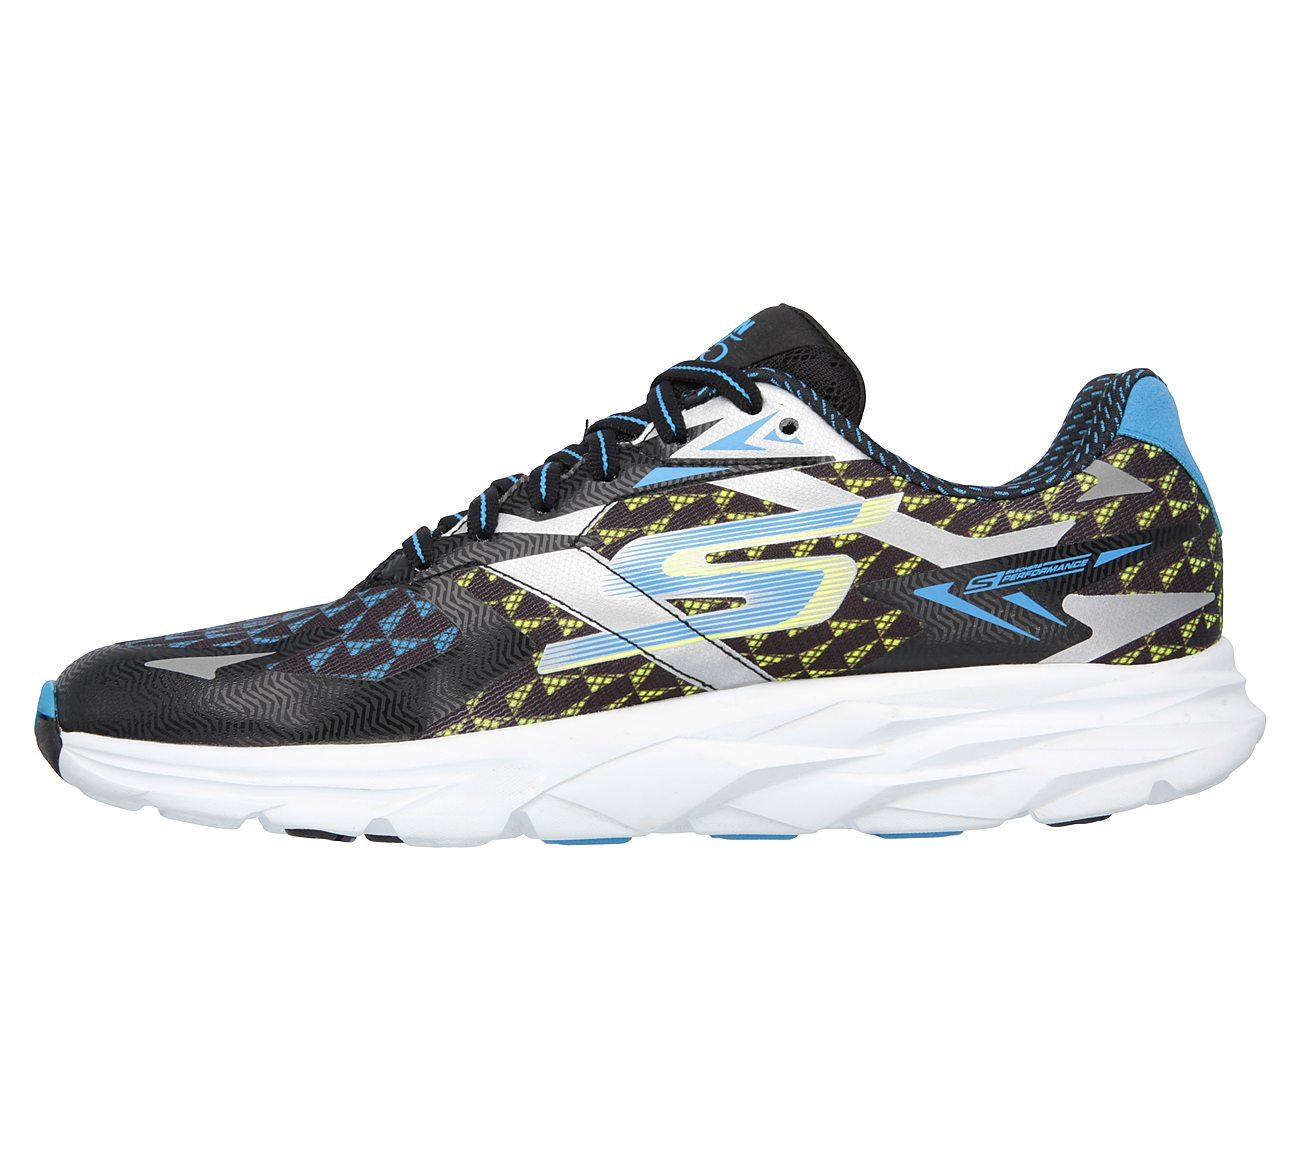 skechers gorun ride 5 mens 2014 \u003eUP to